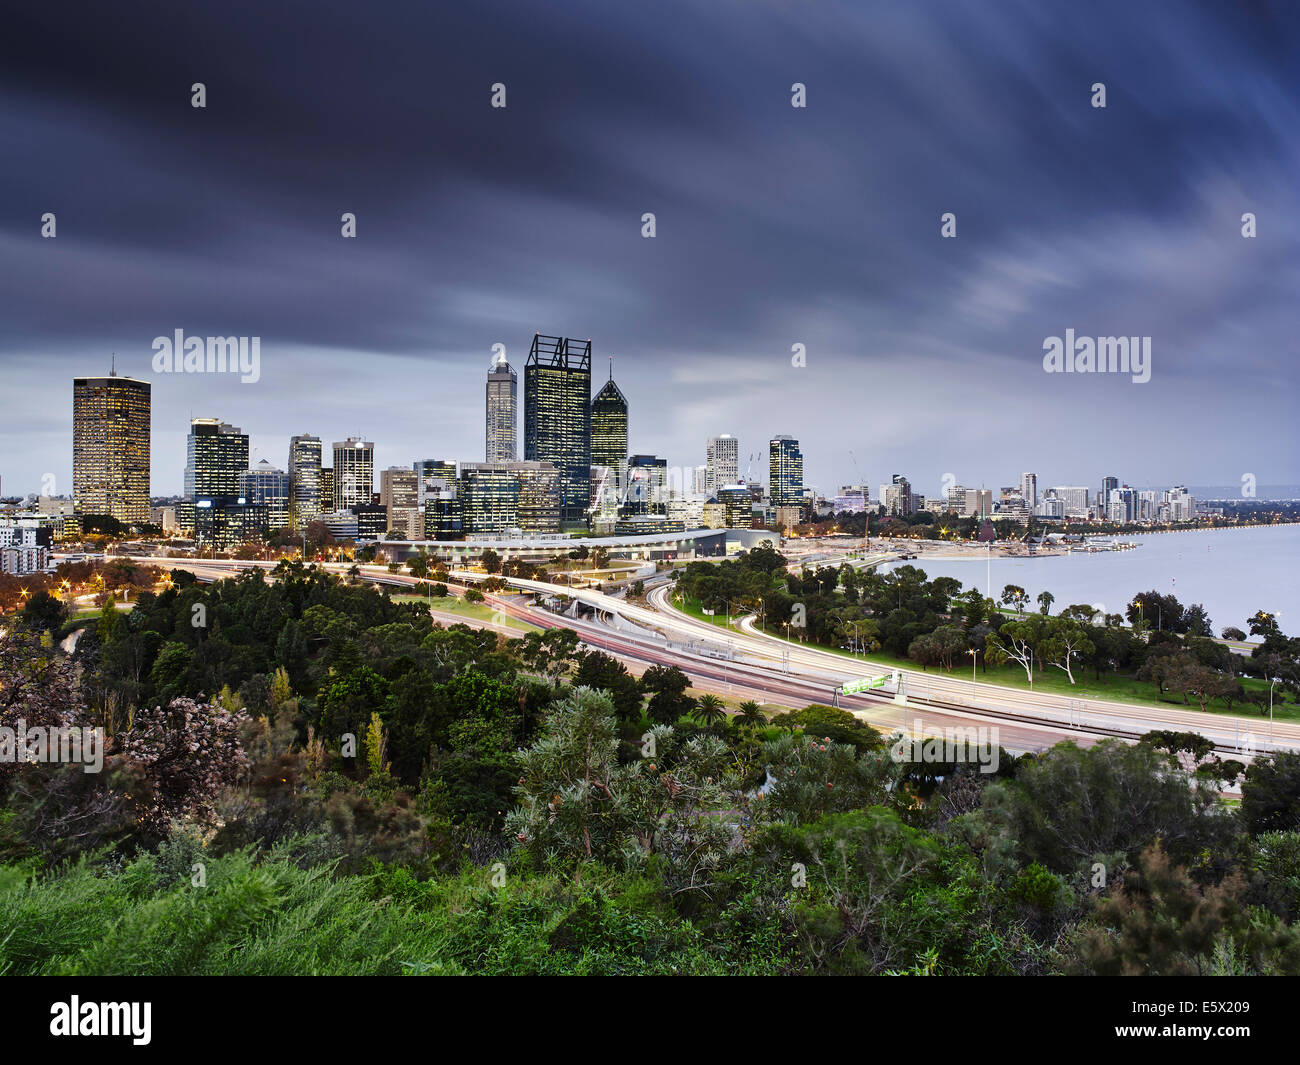 Perth skyline, viewed from Kings Park, Perth, Australia - Stock Image